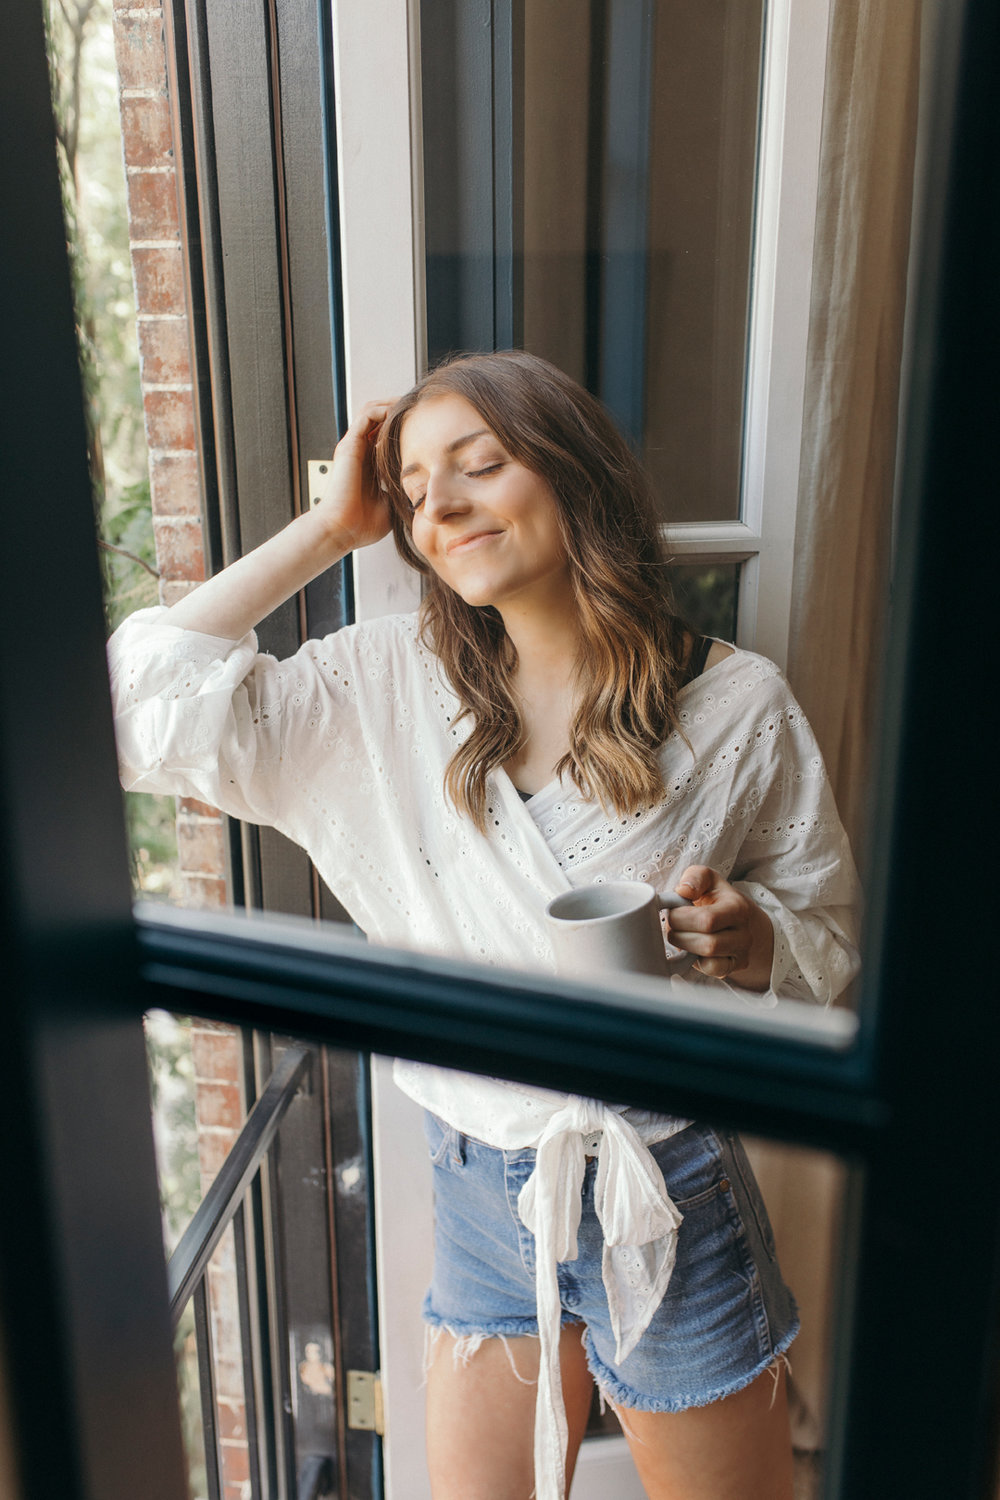 Relaxing next to a large window taking in the glow of the sun, beautiful nature, and fresh air, coffee cup in hand of course!